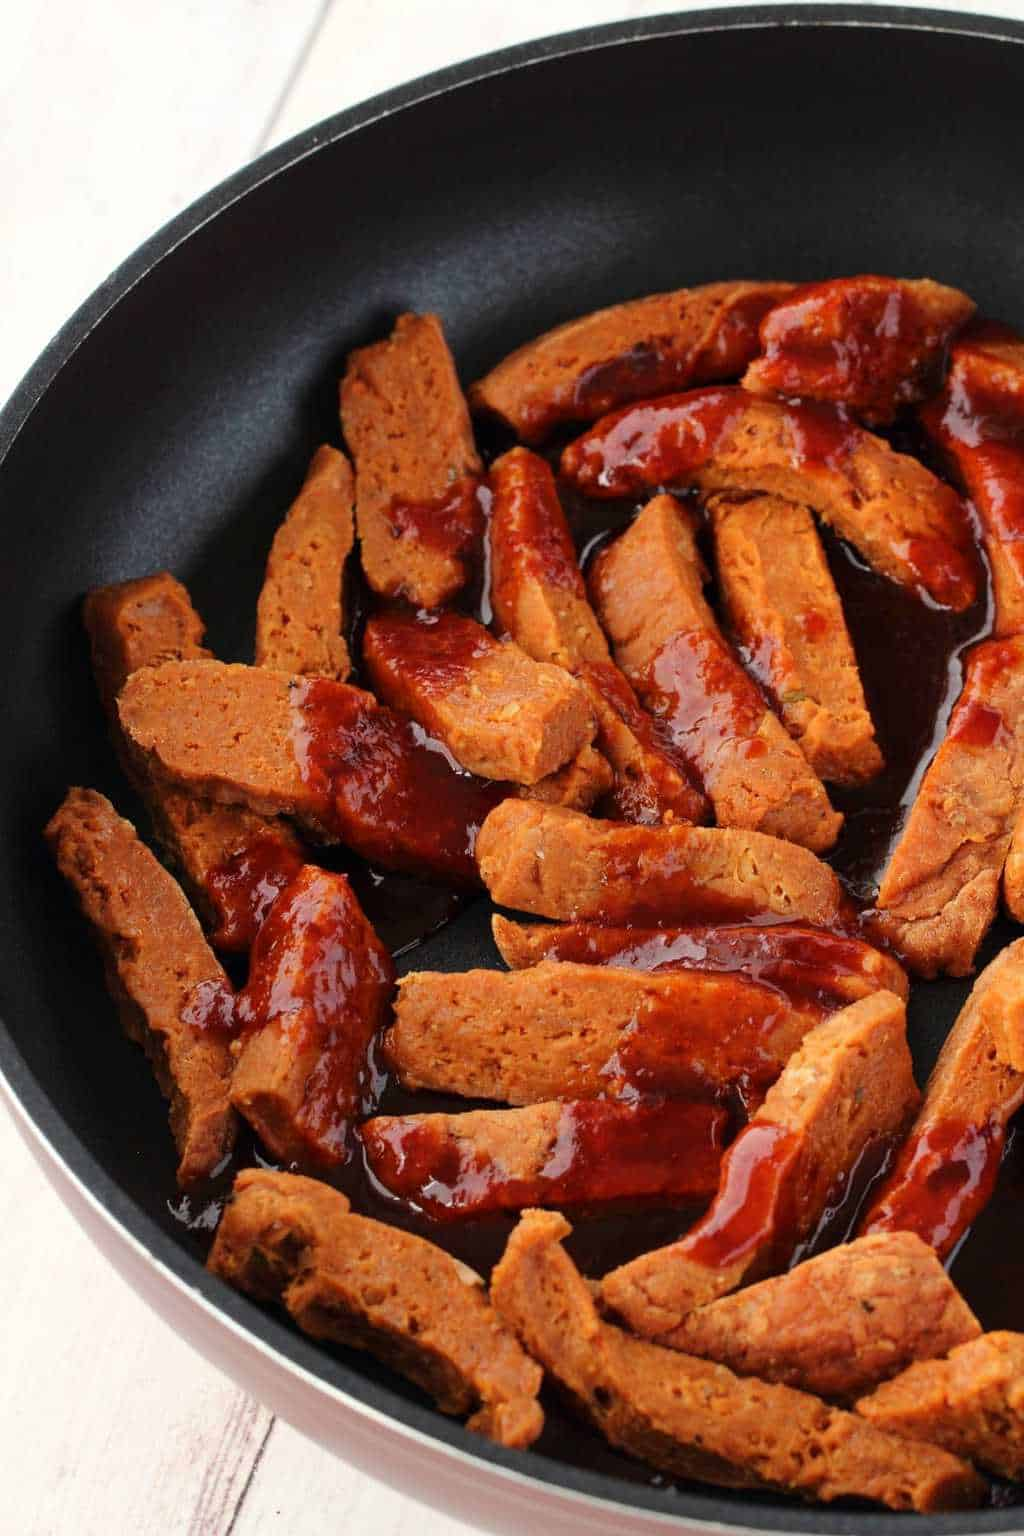 Strips of seitan with marinade sauce poured over them in a frying pan.